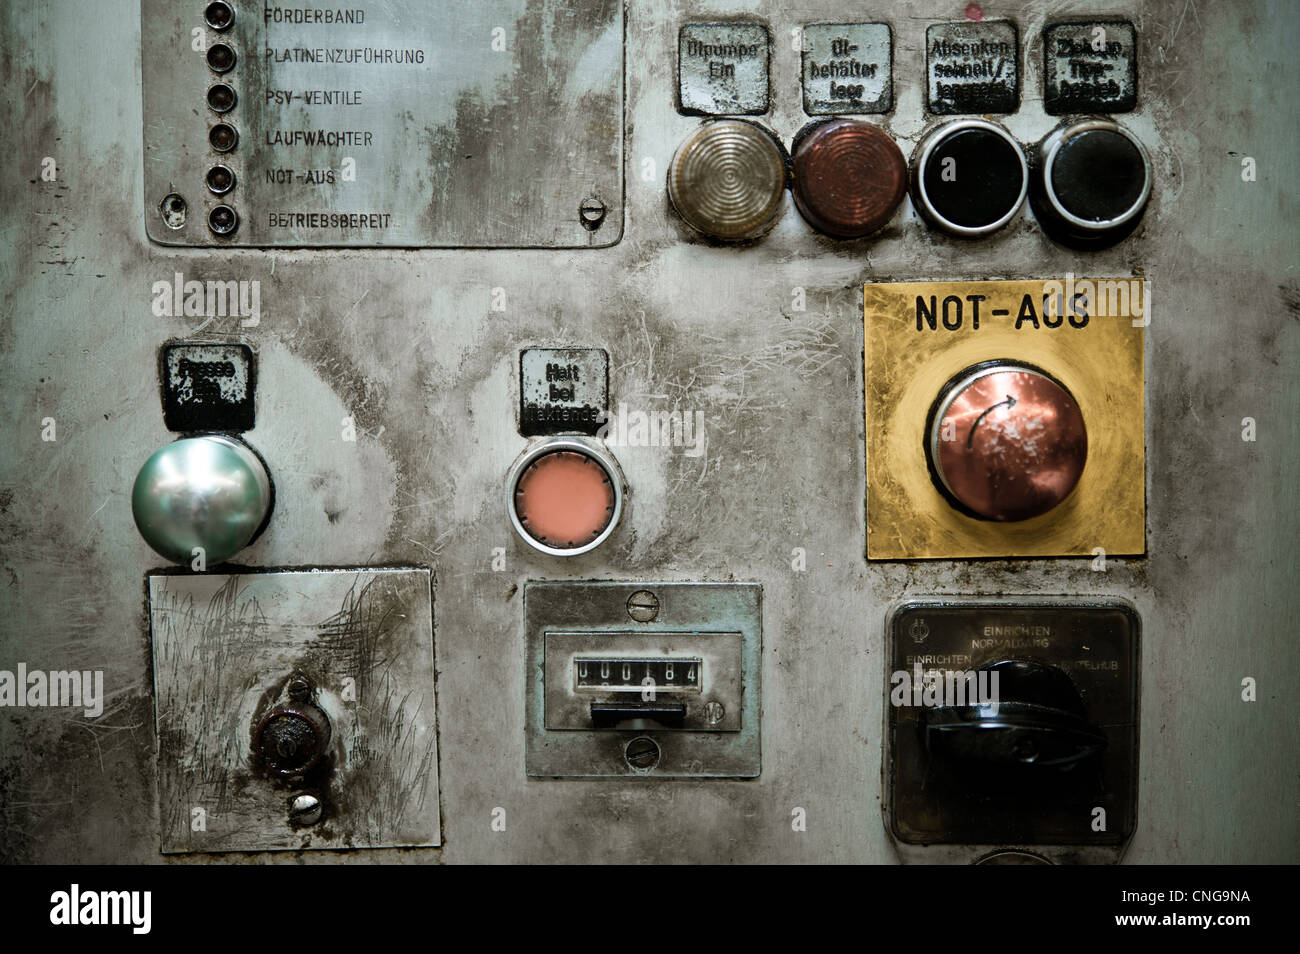 A dirty oily panel of an old machine in a factory with couple of buttons and knobs - Stock Image